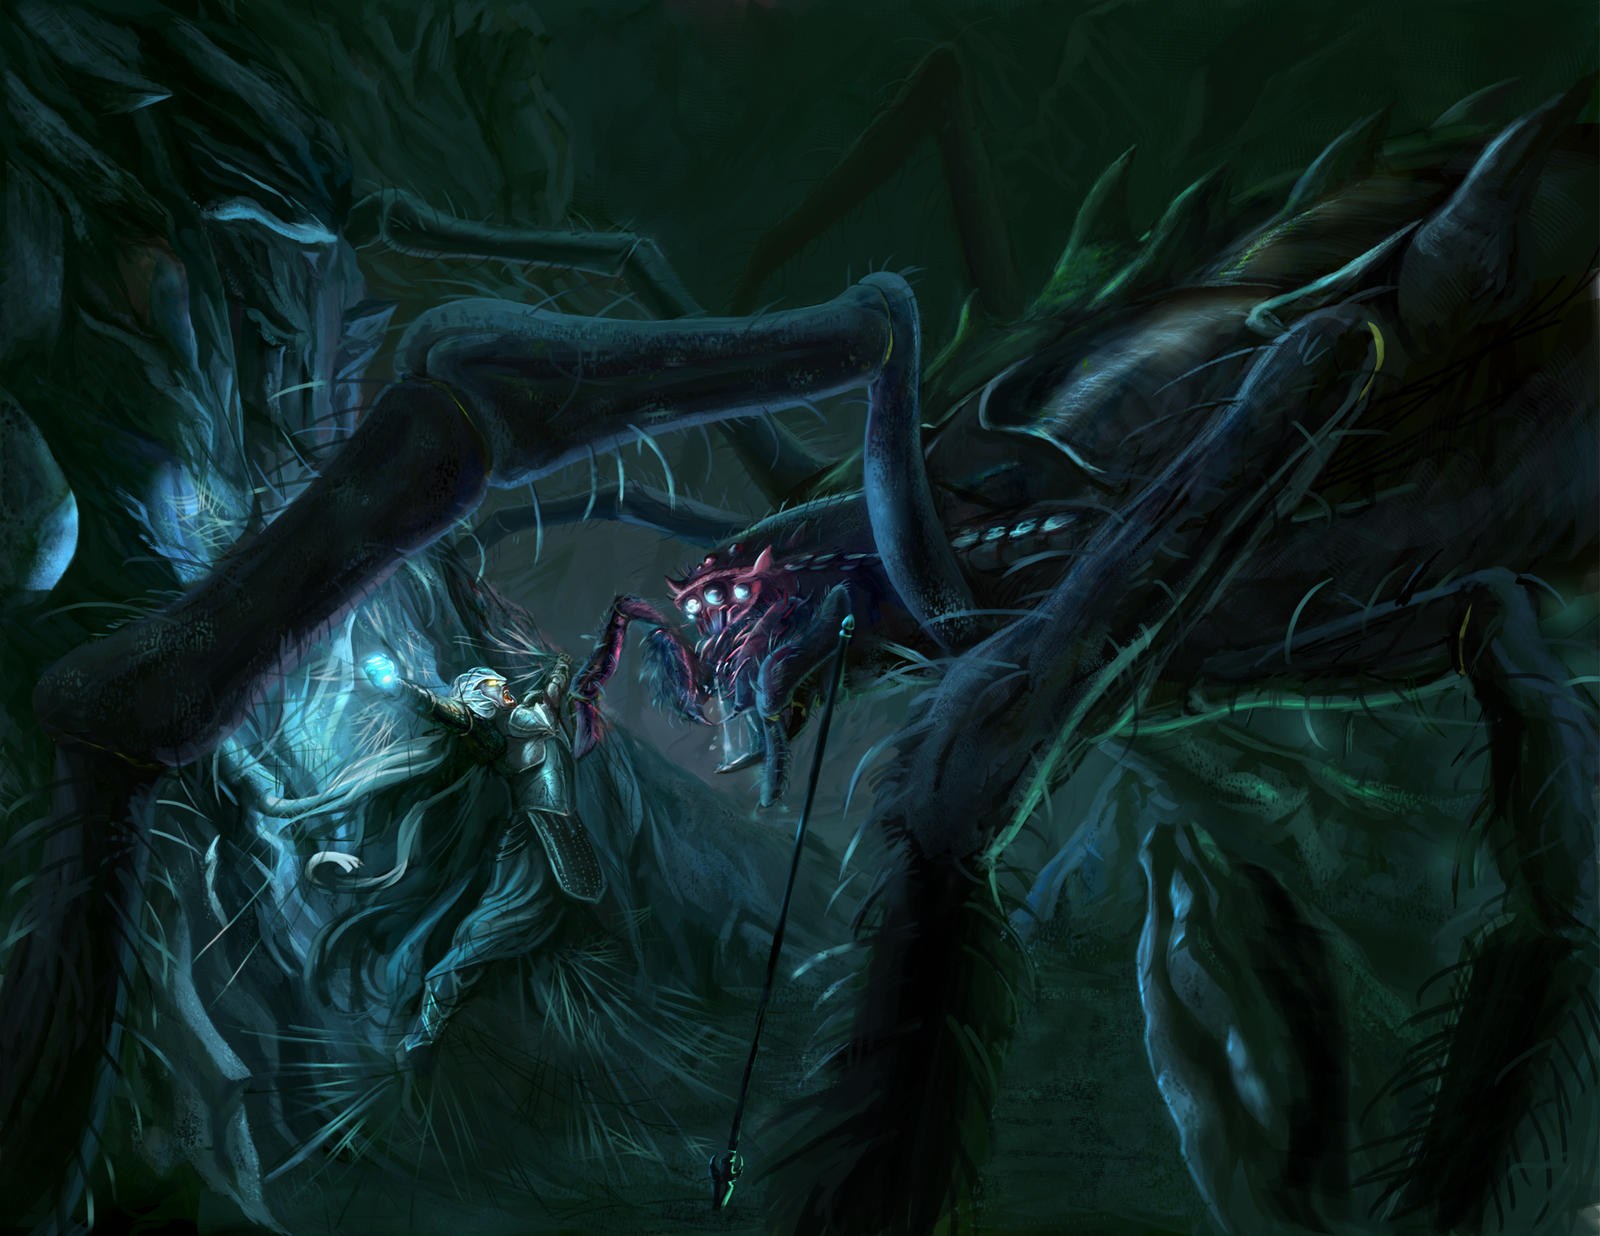 Melkor -morgoth- vs Ungoliant by Jossand